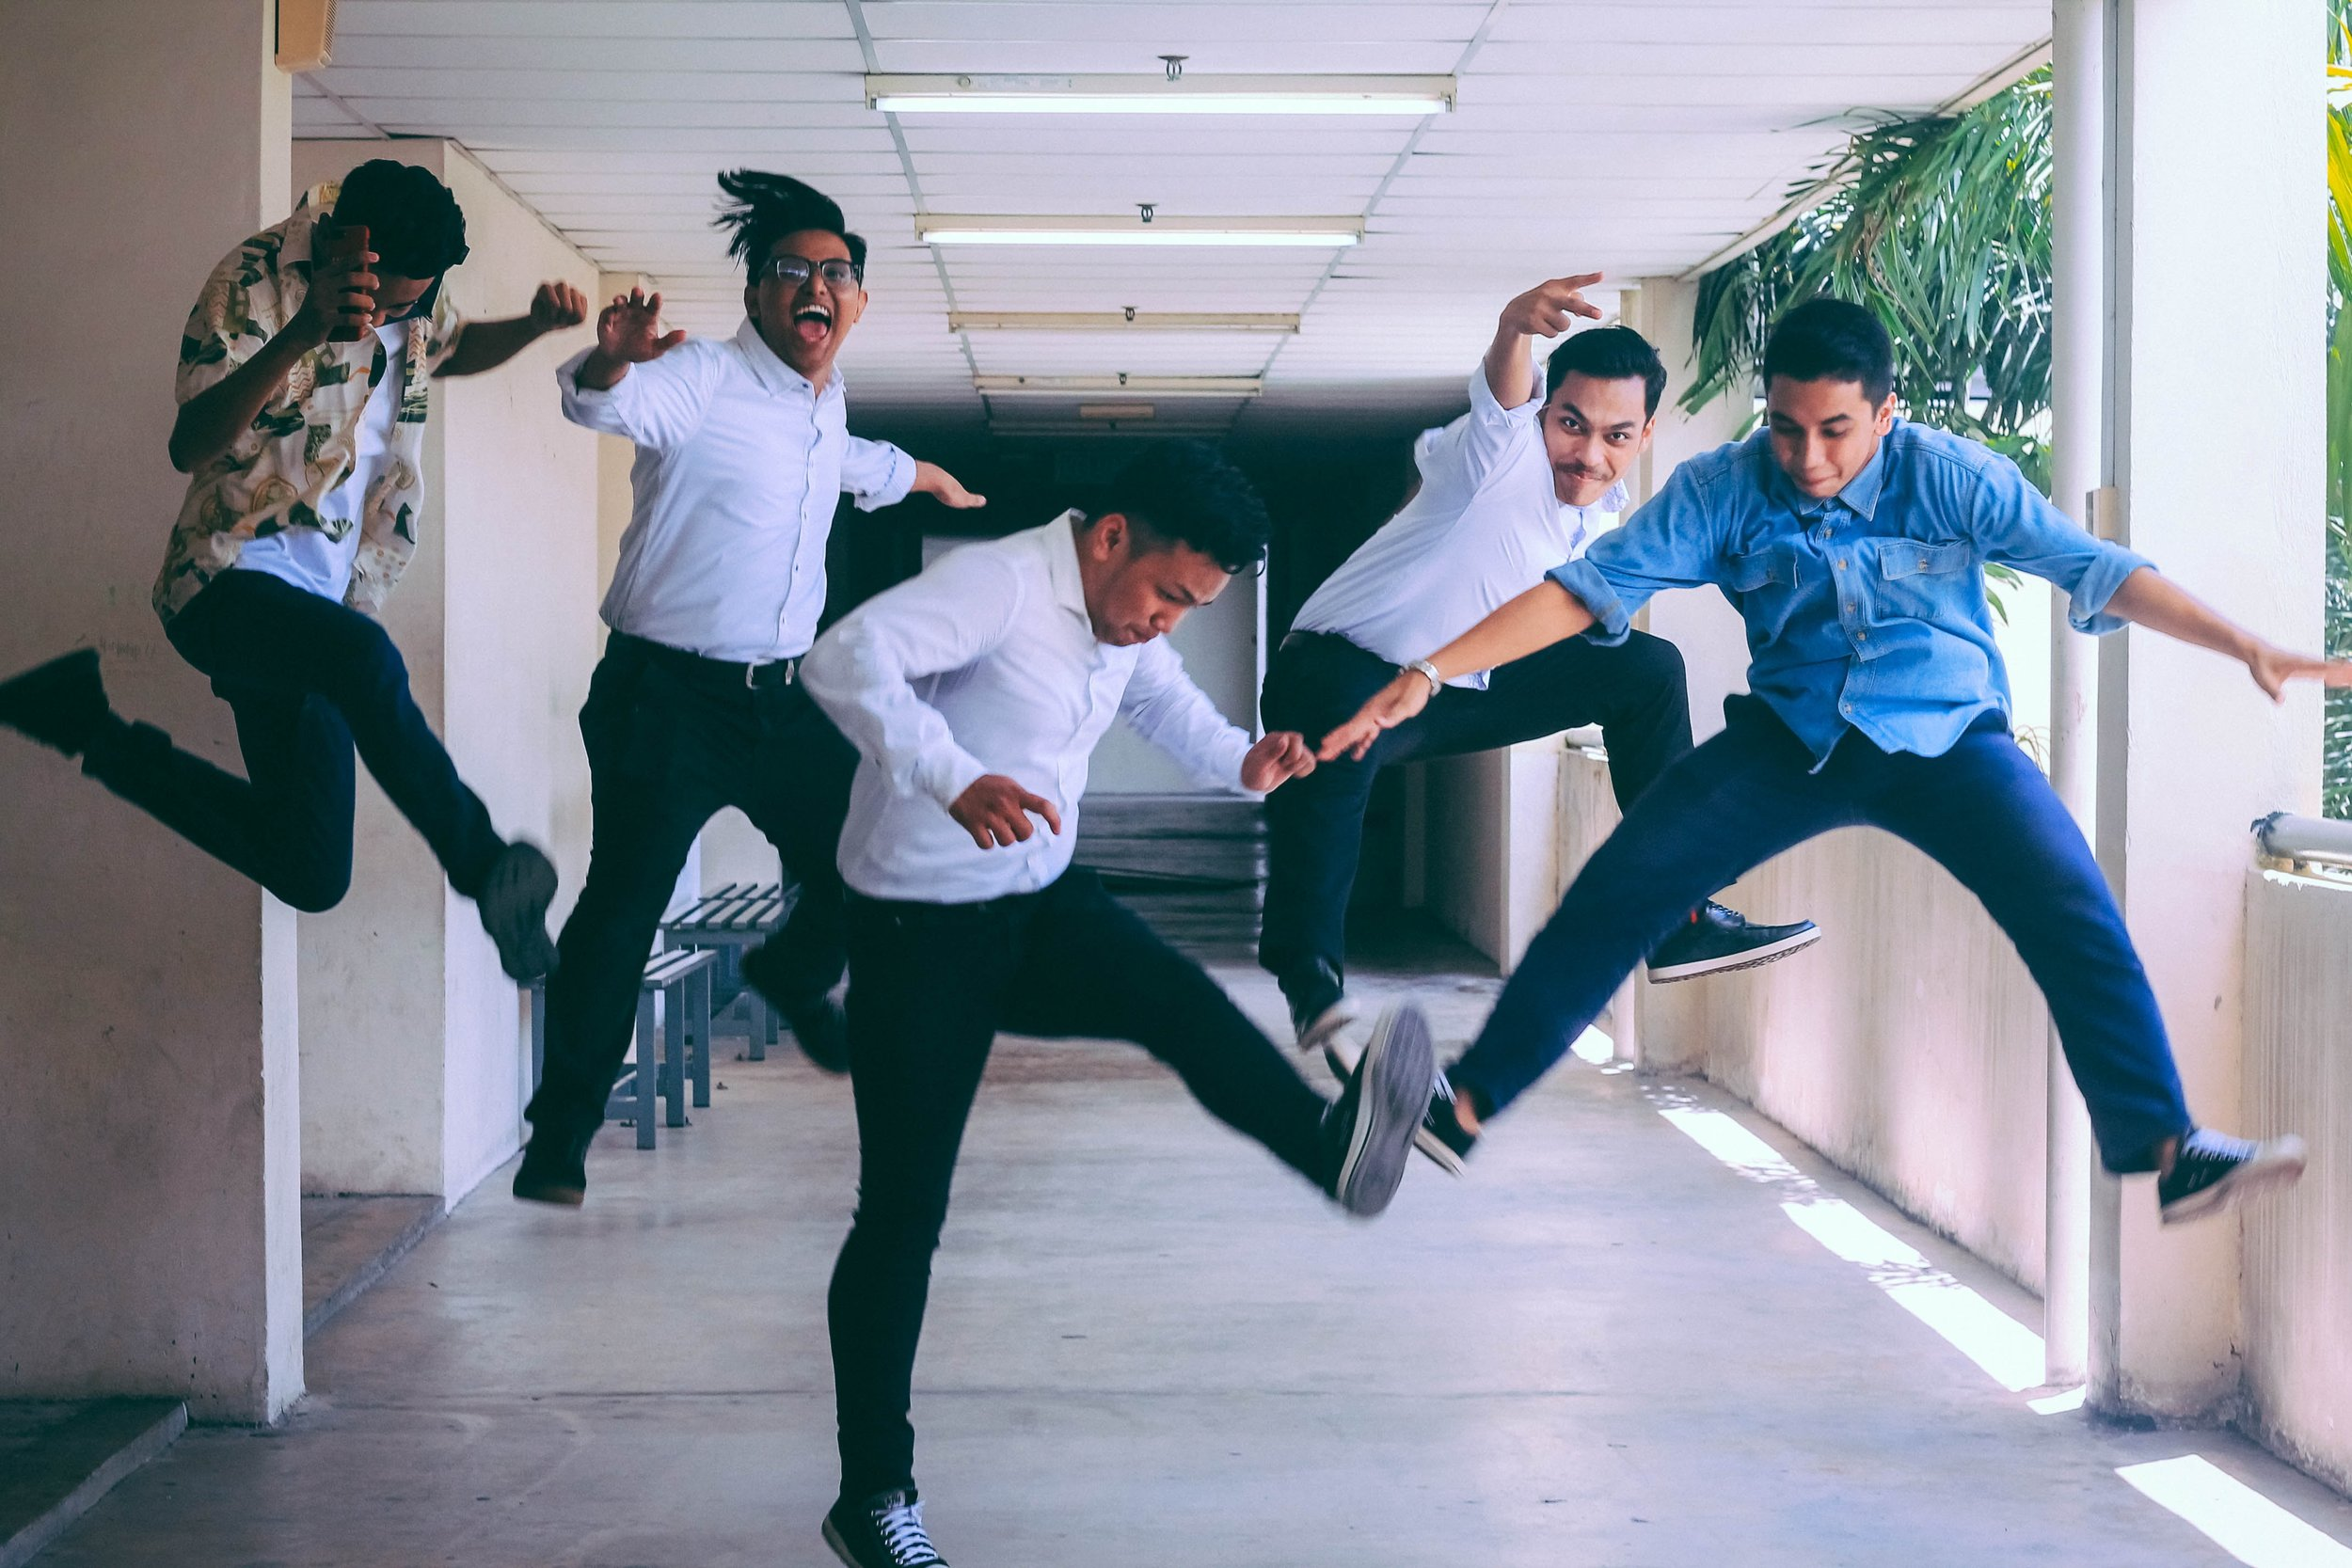 group of five people jumping in a hallway